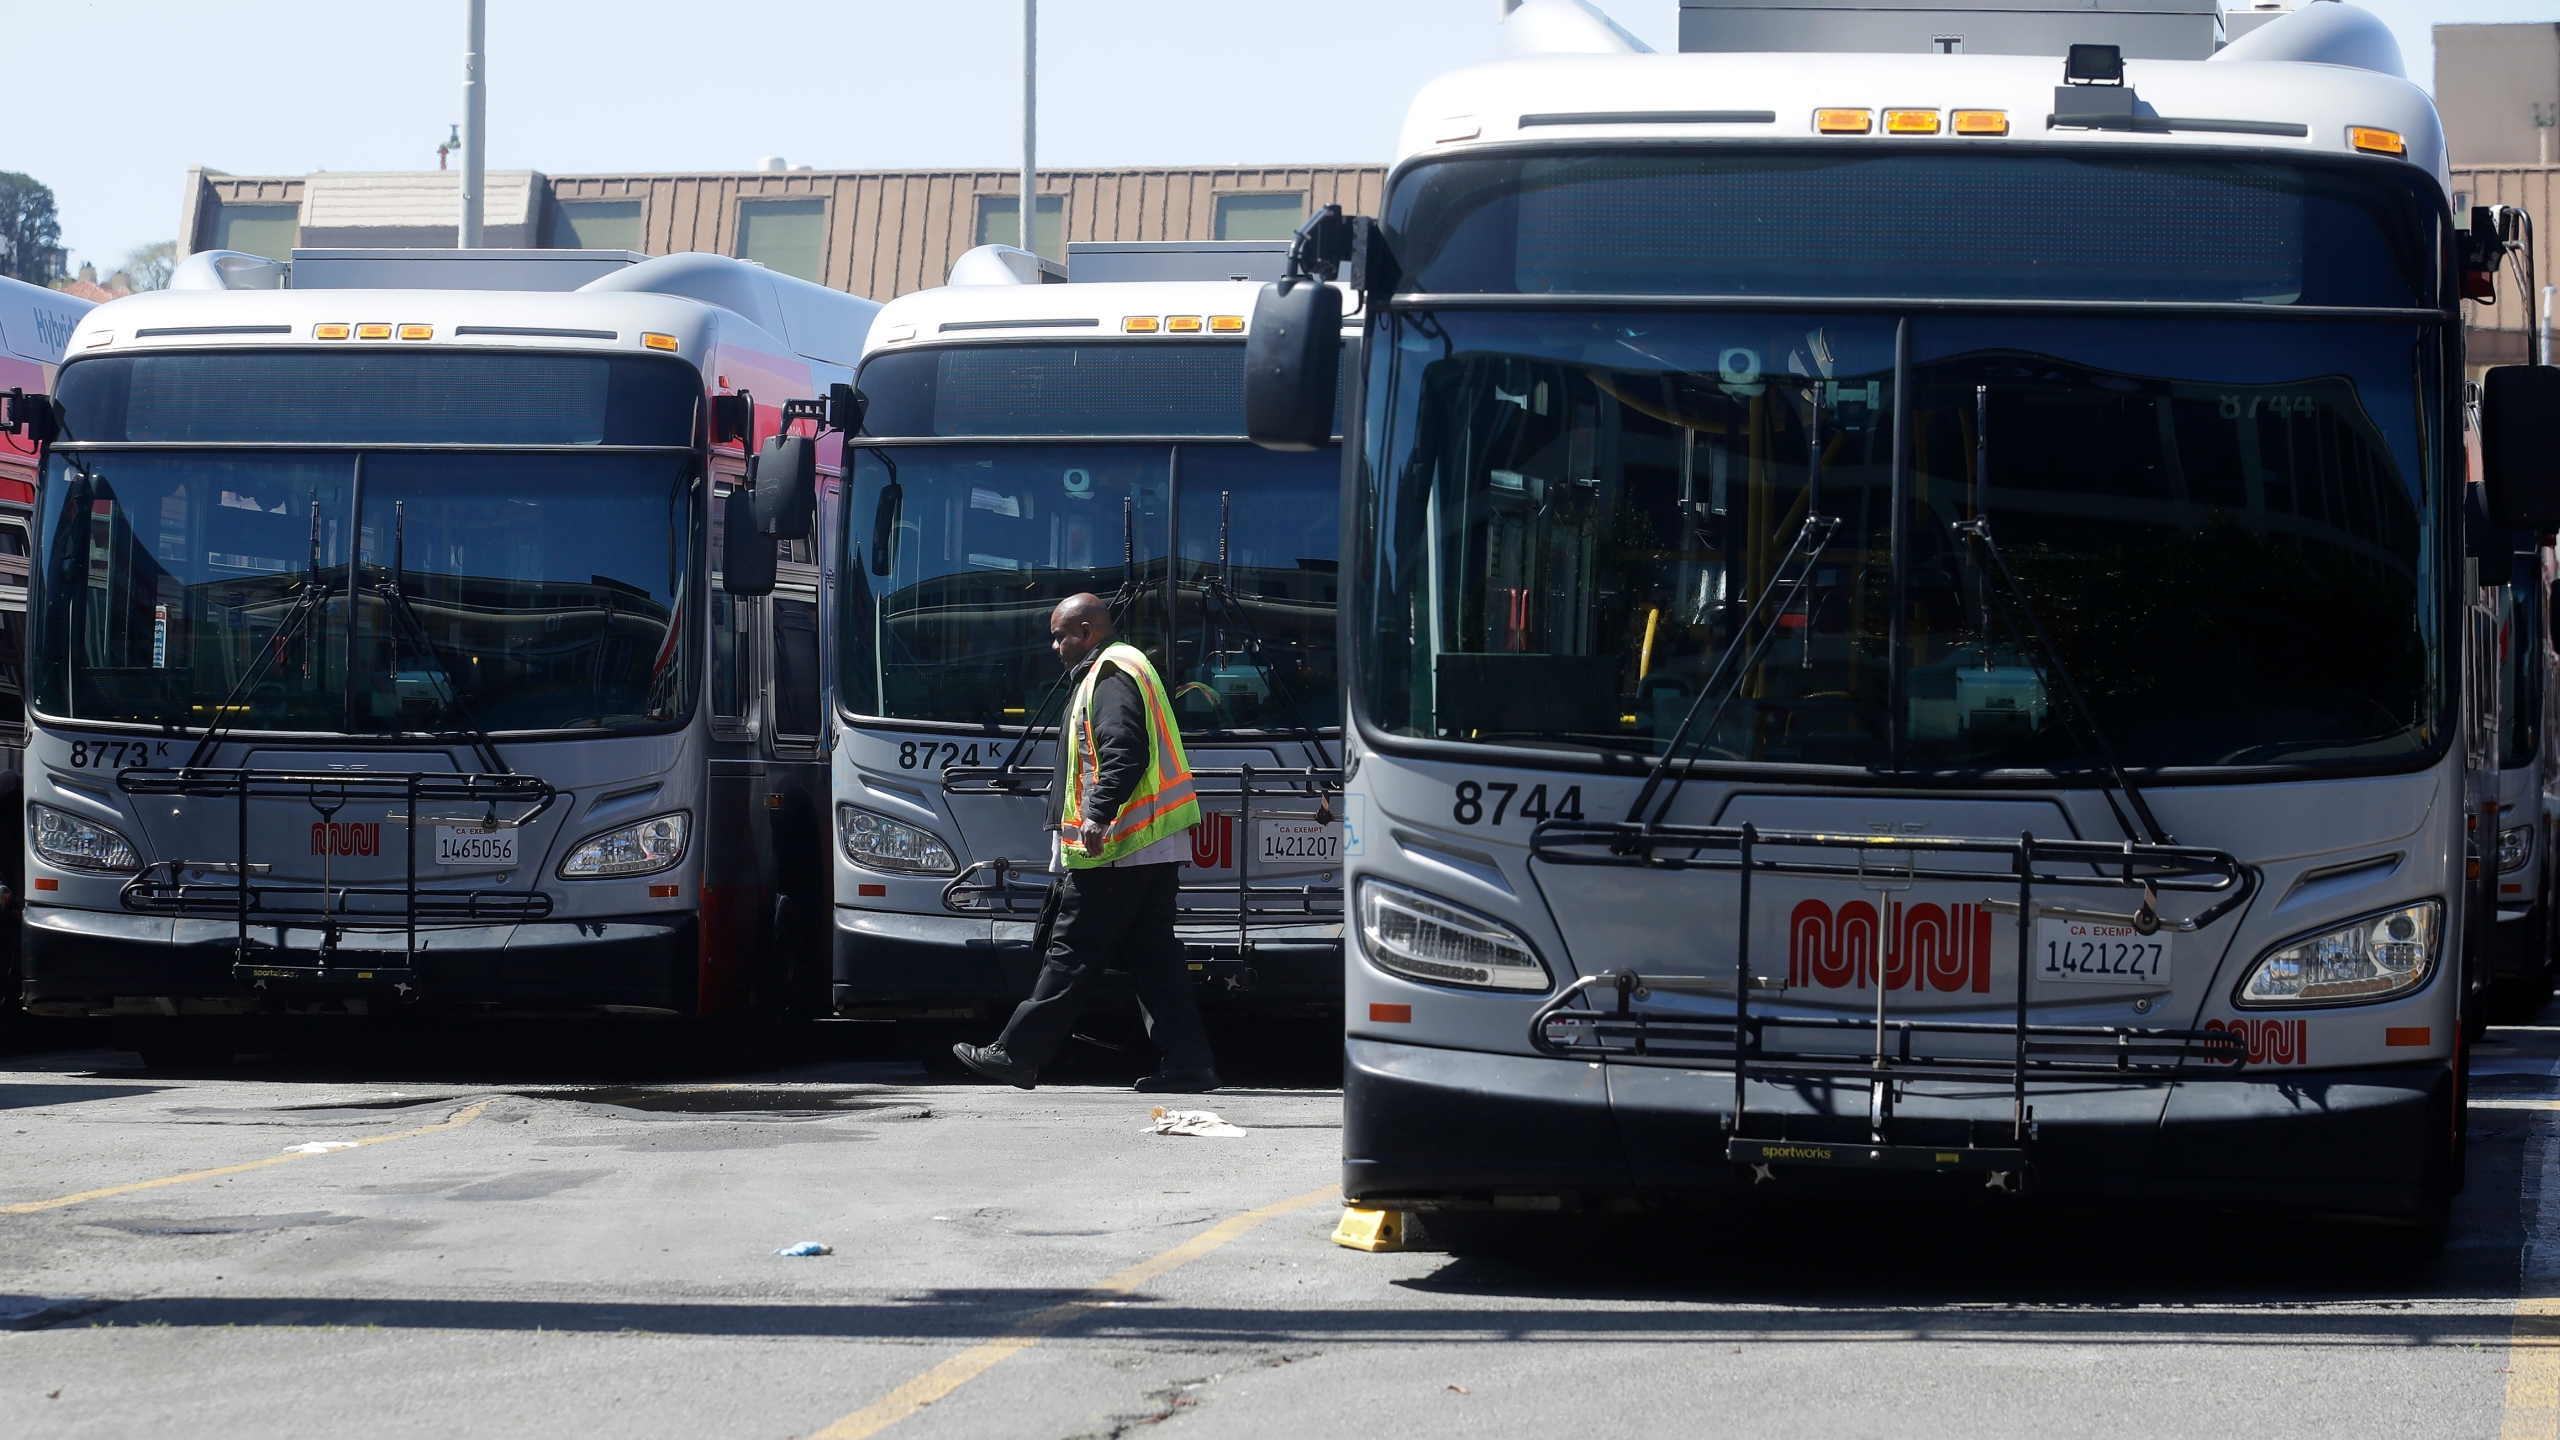 In this April 7, 2020, file photo, a Muni worker walks in front of buses at a San Francisco Municipal Transportation Agency yard in San Francisco. A San Francisco bus driver was assaulted with a wooden bat after asking several passengers to wear a mask in keeping with city health orders to combat the coronavirus. A San Francisco police spokesman said three men boarded the bus Wednesday afternoon, July 22, 2020, and refused the driver's multiple requests to put on masks. (AP Photo/Jeff Chiu, File)